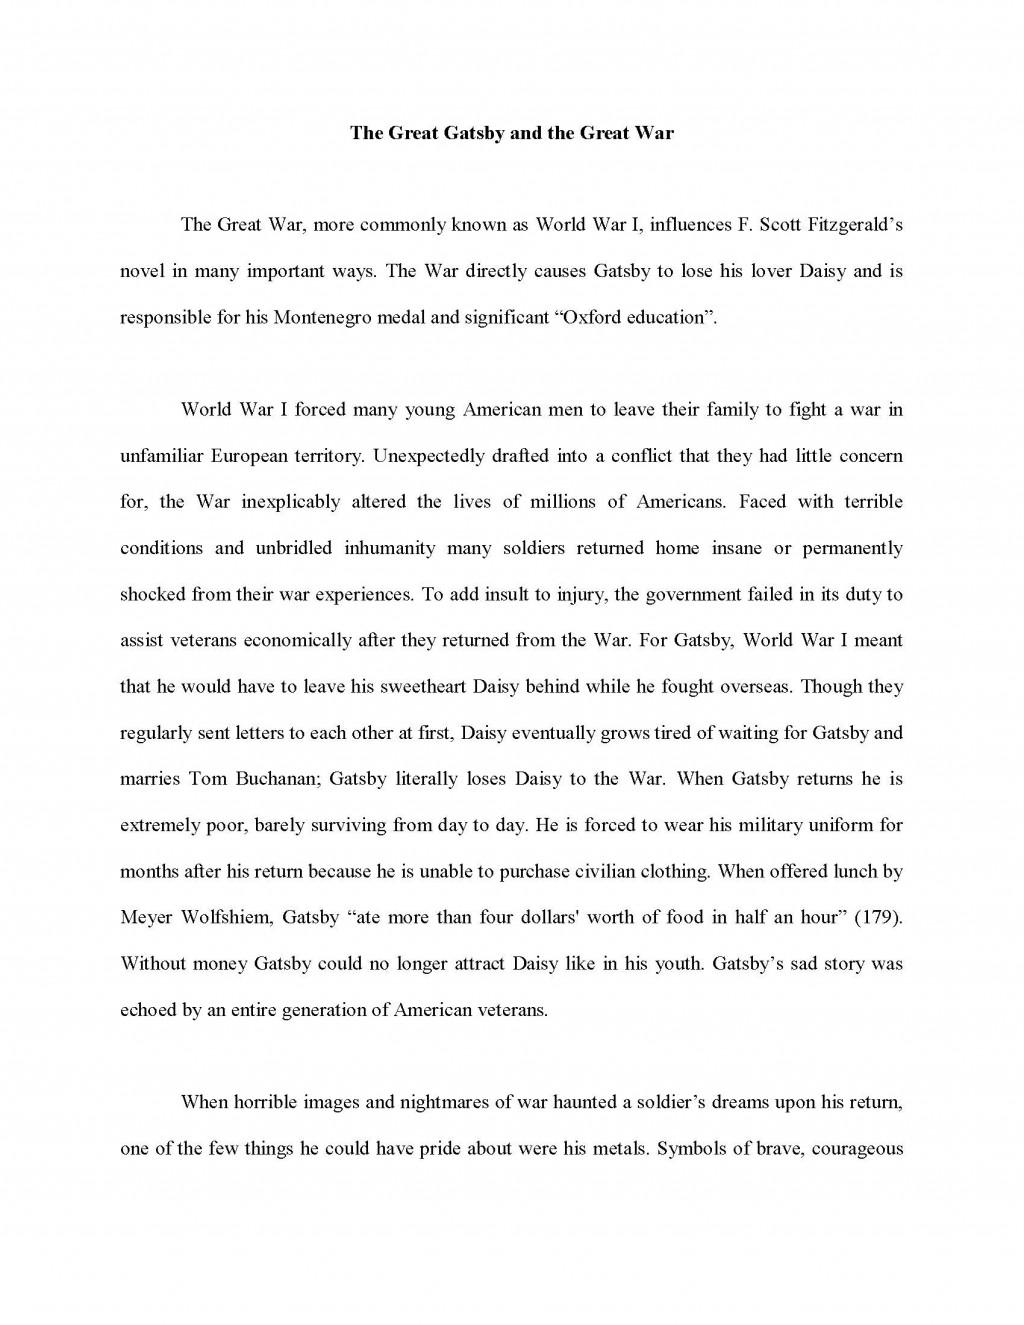 004 Informative Essay Sample Example How To Write An Singular Explanatory Expository Middle School Introduction Large